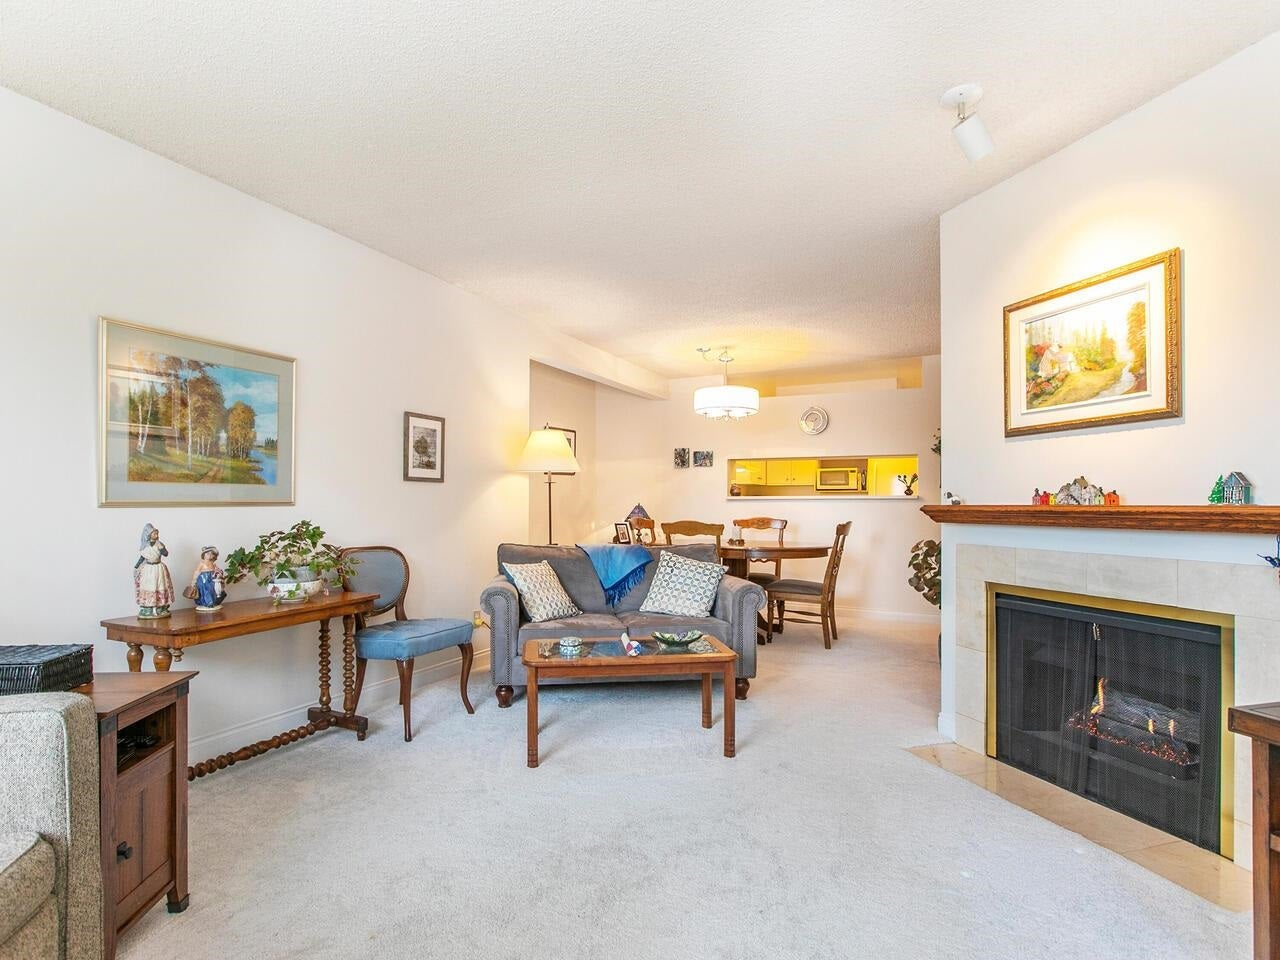 104 2800 CHESTERFIELD AVENUE - Upper Lonsdale Apartment/Condo for sale, 2 Bedrooms (R2603260) - #8